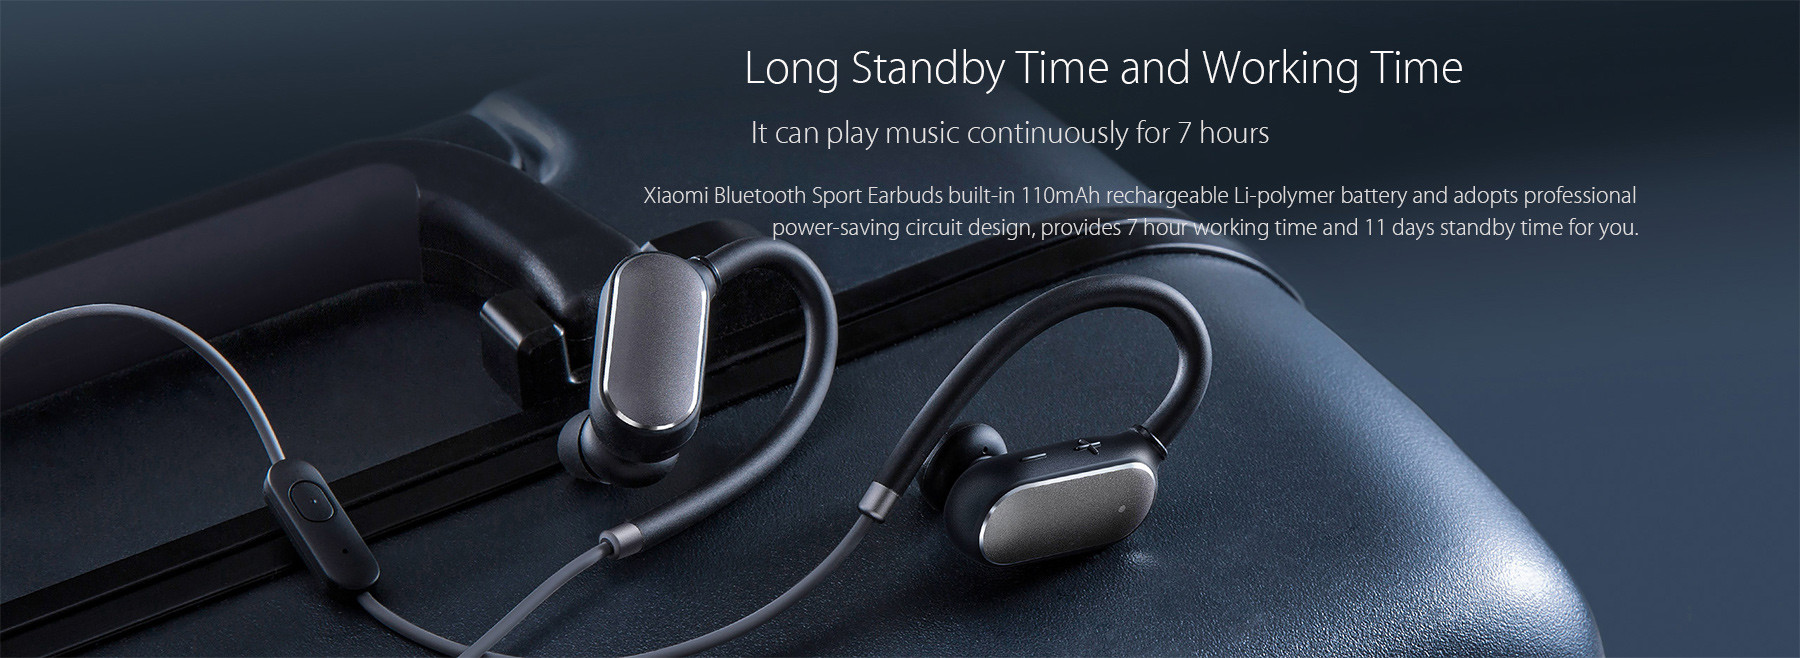 Xiaomi Bluetooth 41 Music Sport Earbuds Support Handsfree Calls  Volume Control Song Switch